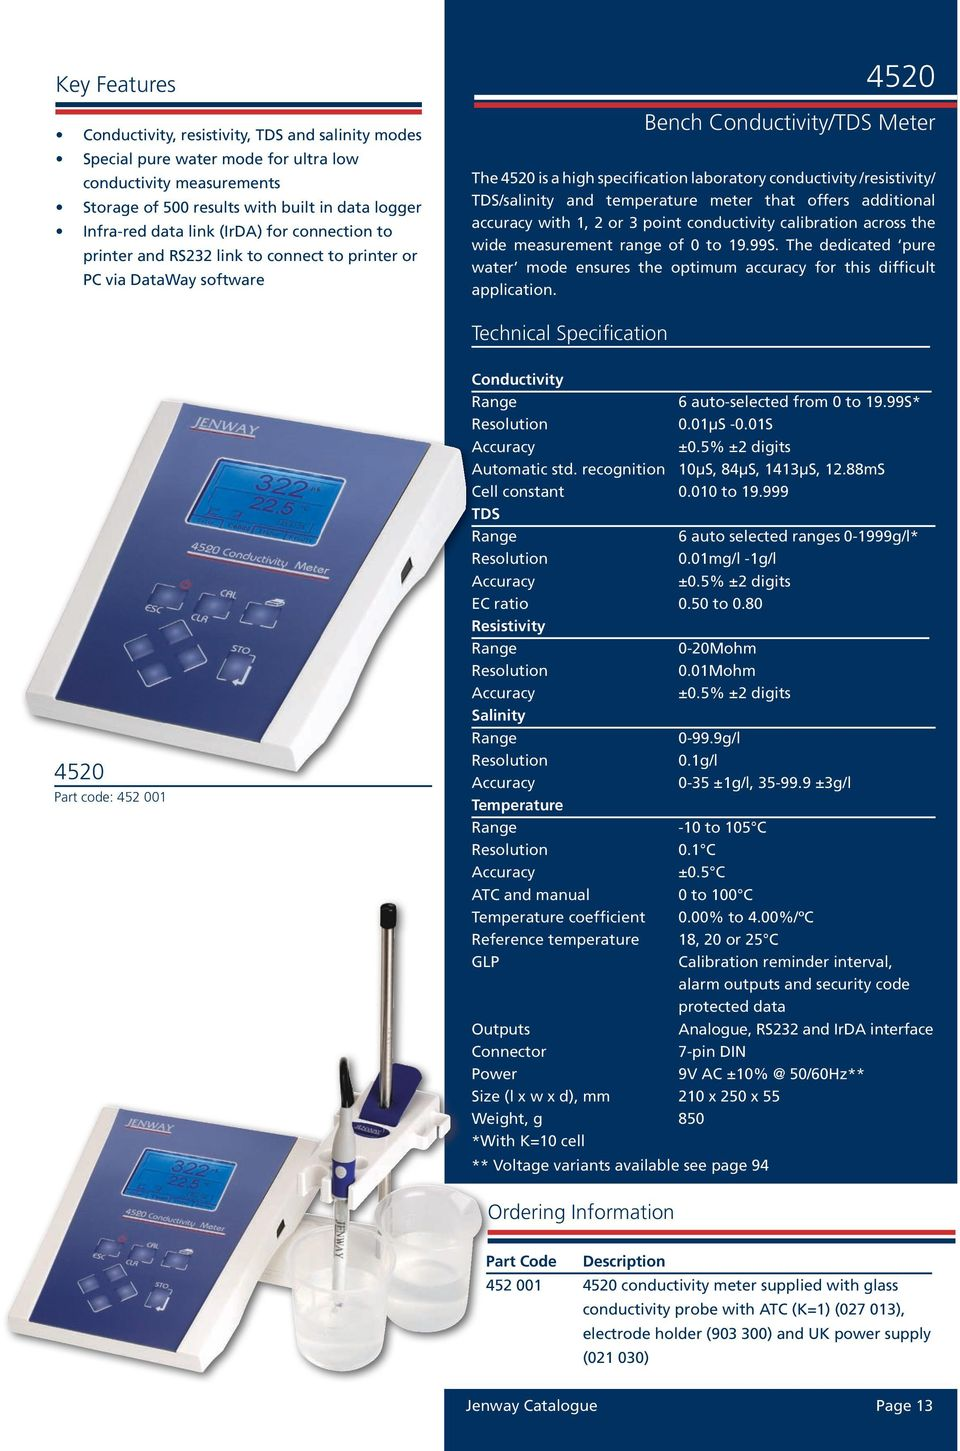 /resistivity/ TDS/salinity and temperature meter that offers additional accuracy with 1, 2 or 3 point conductivity calibration across the wide measurement range of 0 to 19.99S.